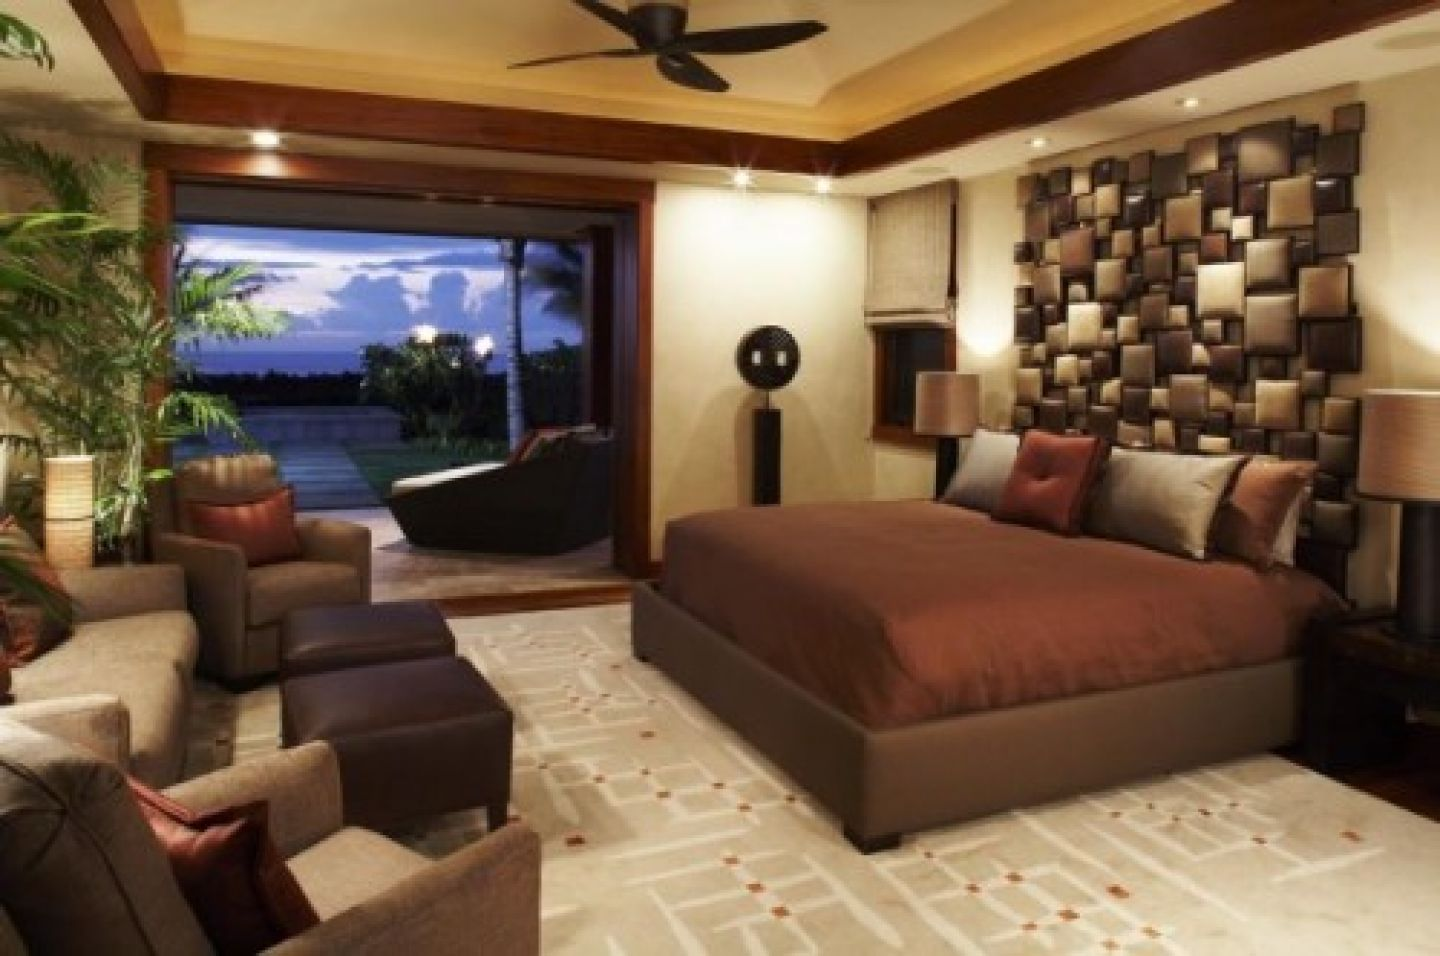 Fill Comfy Bedroom using Amazing Home Design Ideas with Wide Bed and Unusual Wall Detail